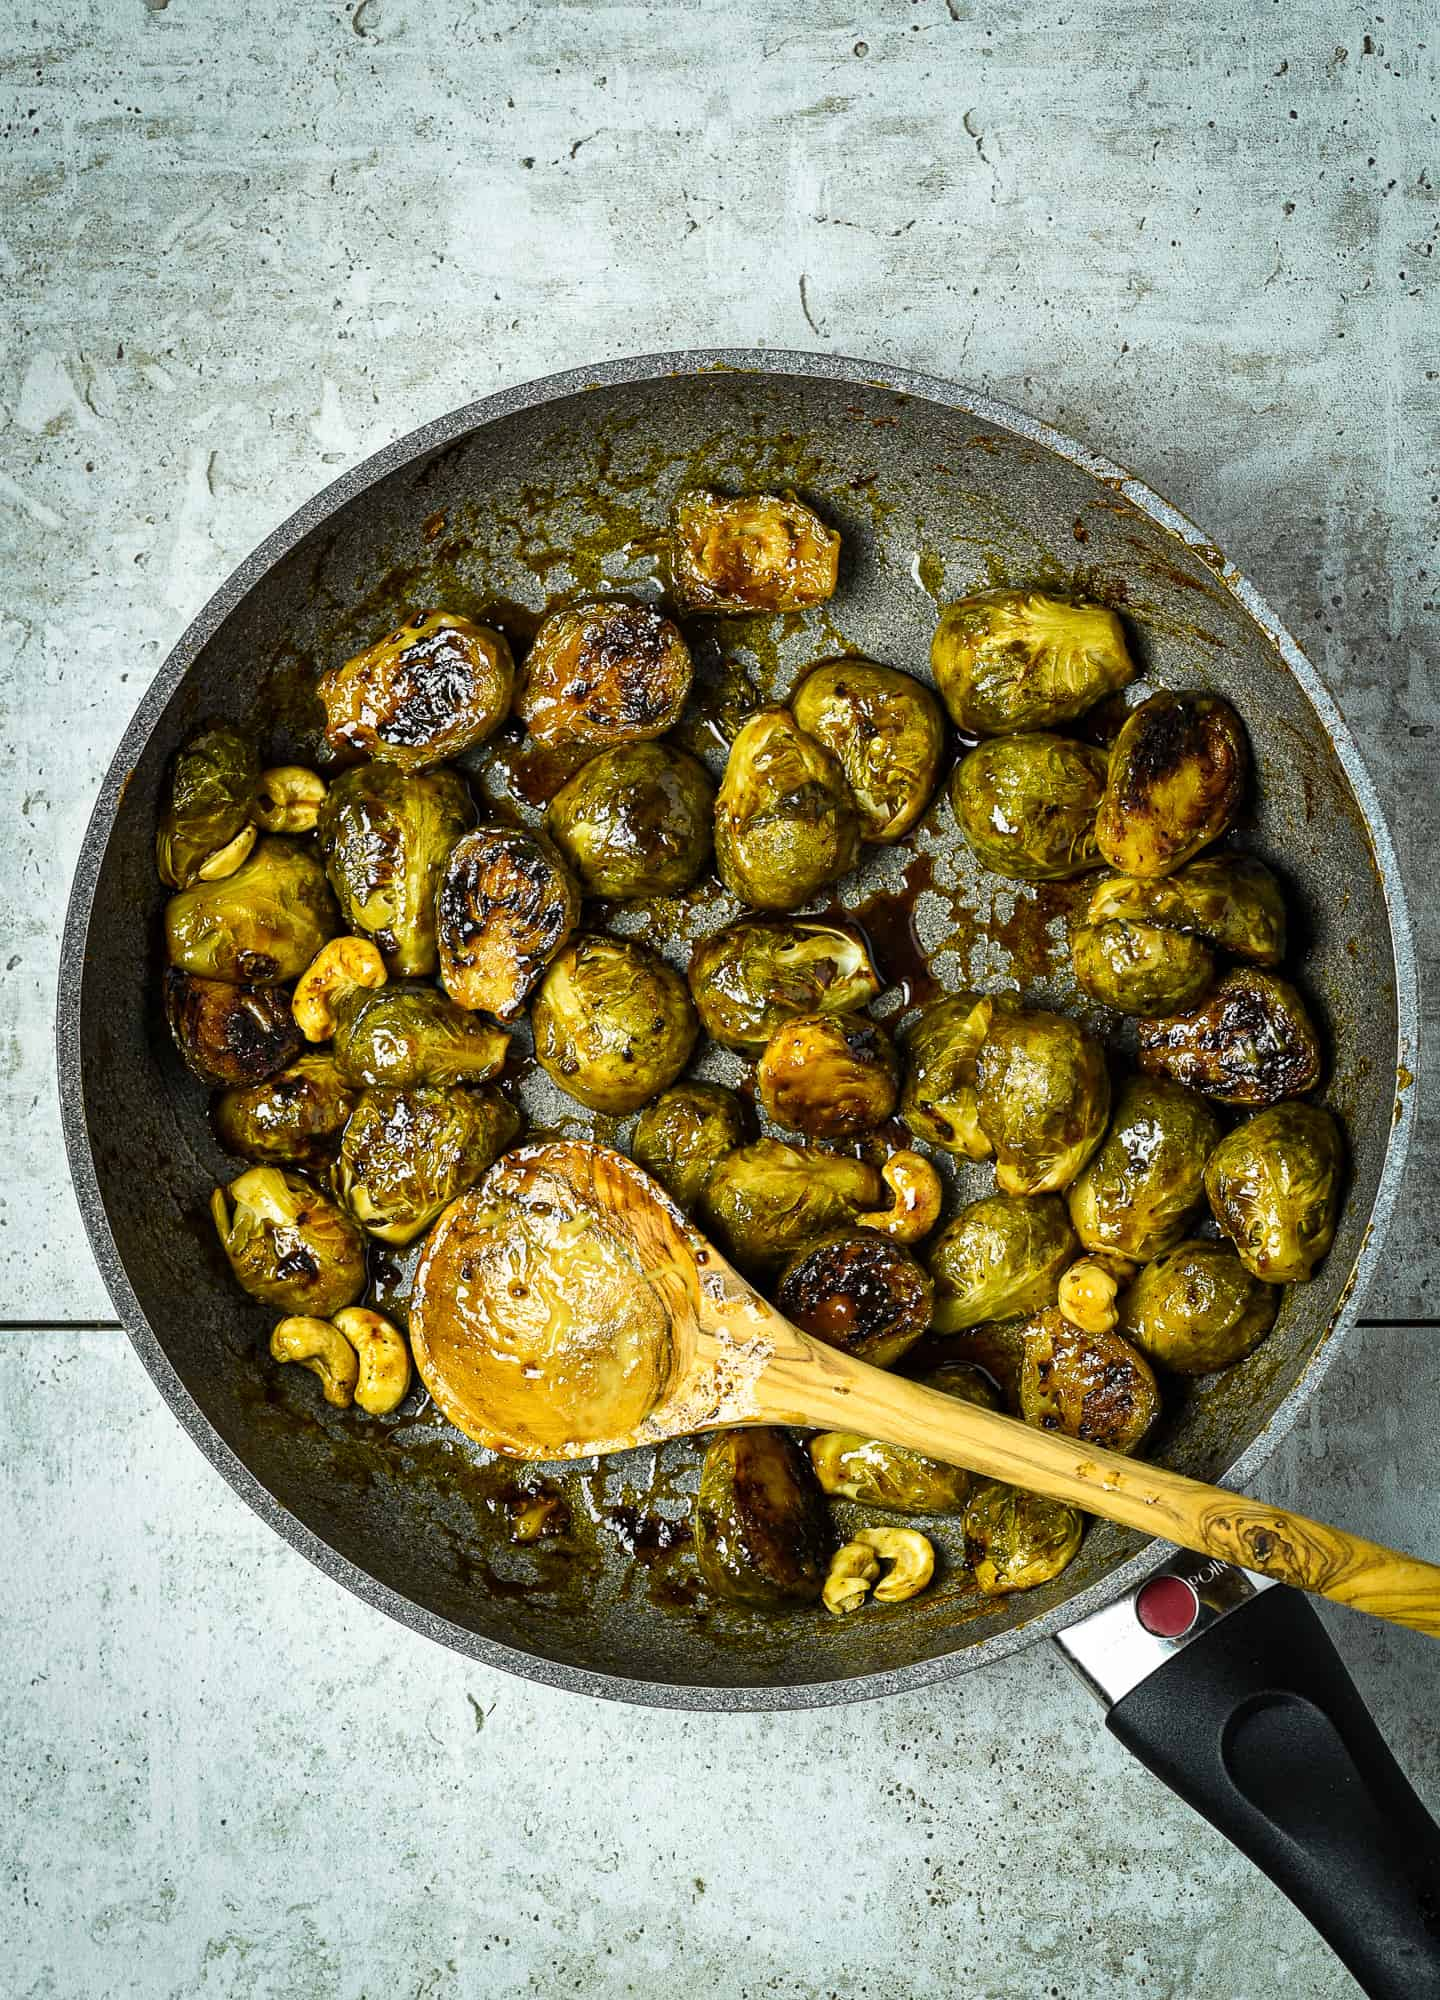 Pan of fried Brussels sprouts.